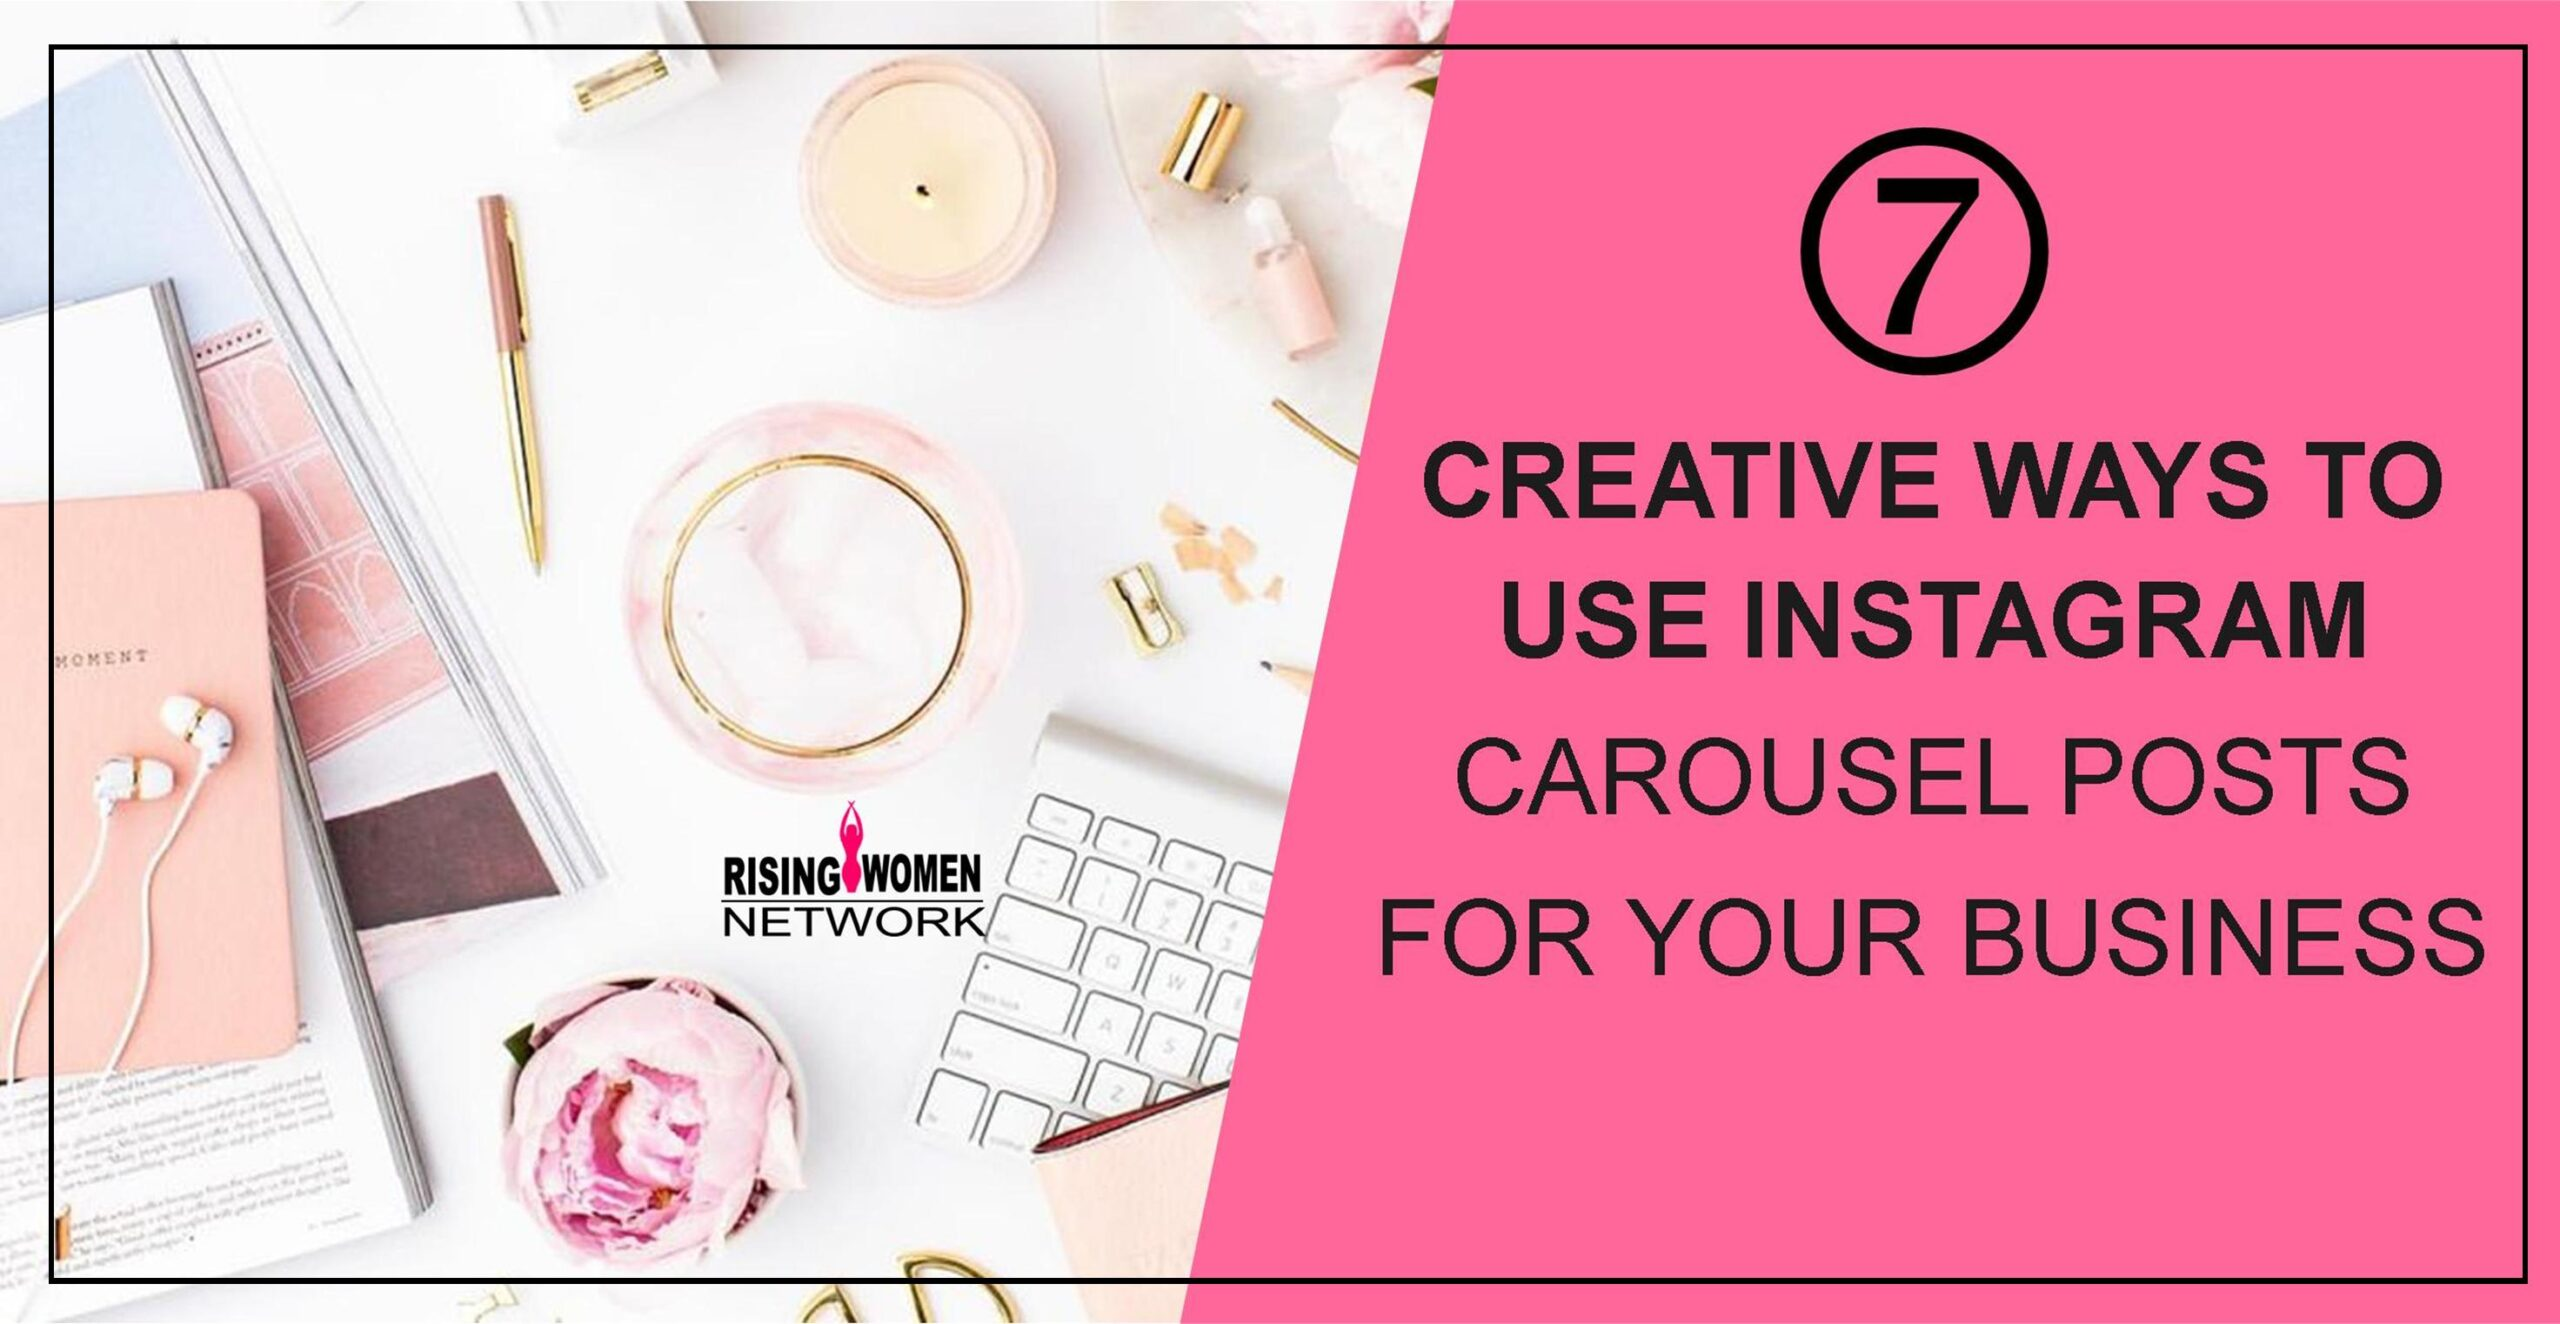 From promoting new product lines to sharing event photos and videos, here are  7 creative ways you can use Instagram carousel posts.